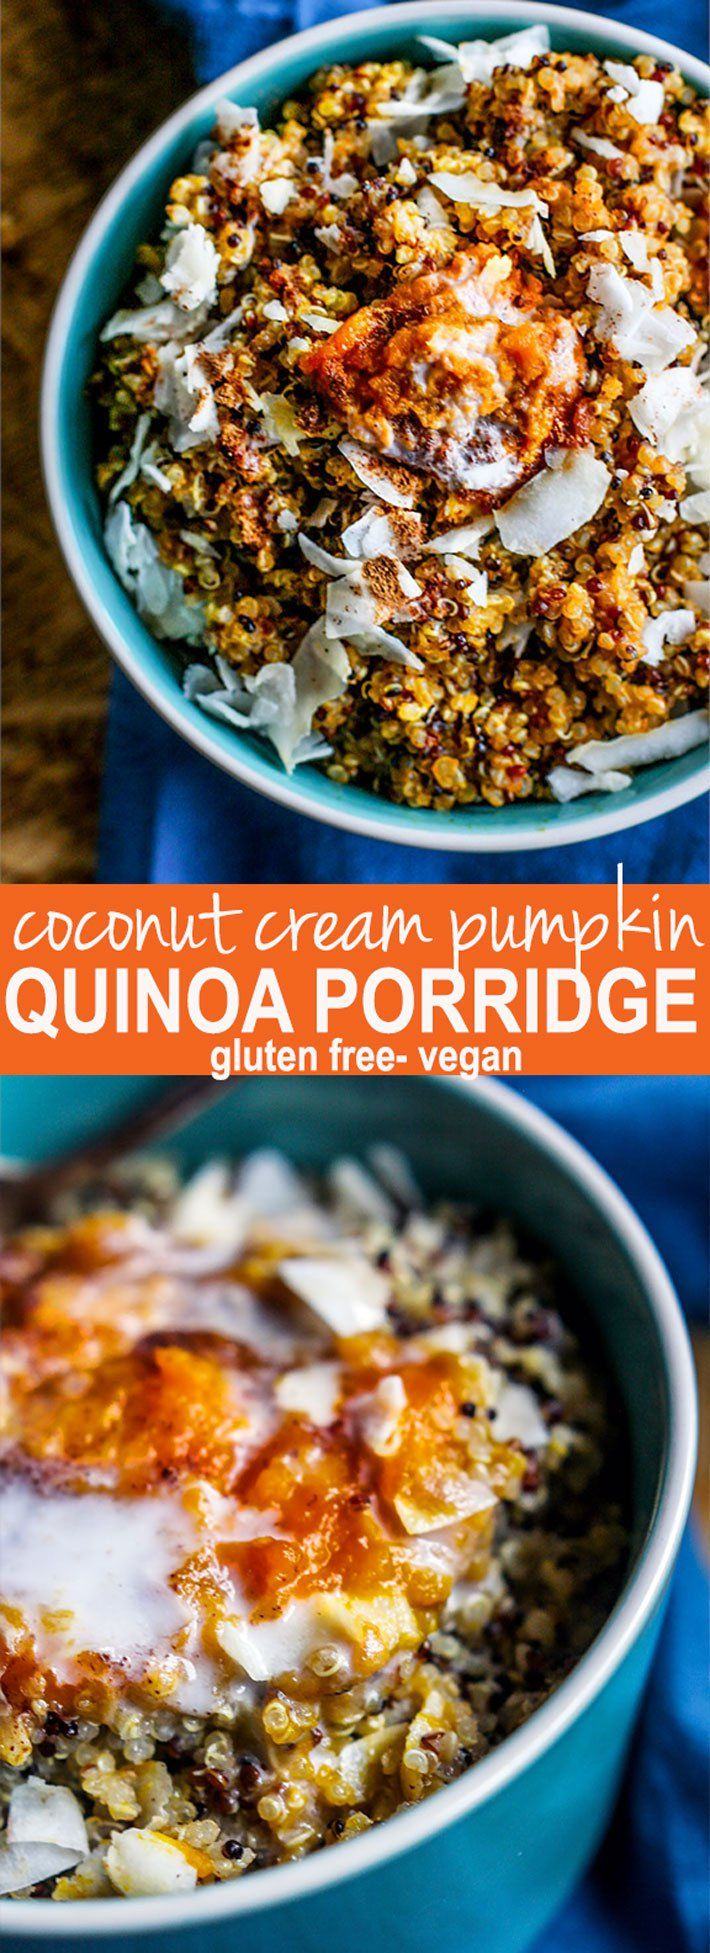 Gluten Free Coconut Creamed Pumpkin Quinoa Porridge. A vegan friendly protein rich breakfast perfect for Fall. Pumpkin and Coconut Cream add in a balance of healthy fats and fiber to make this one powerhouse breakfast! Easy to make on stove top or in a rice cooker.